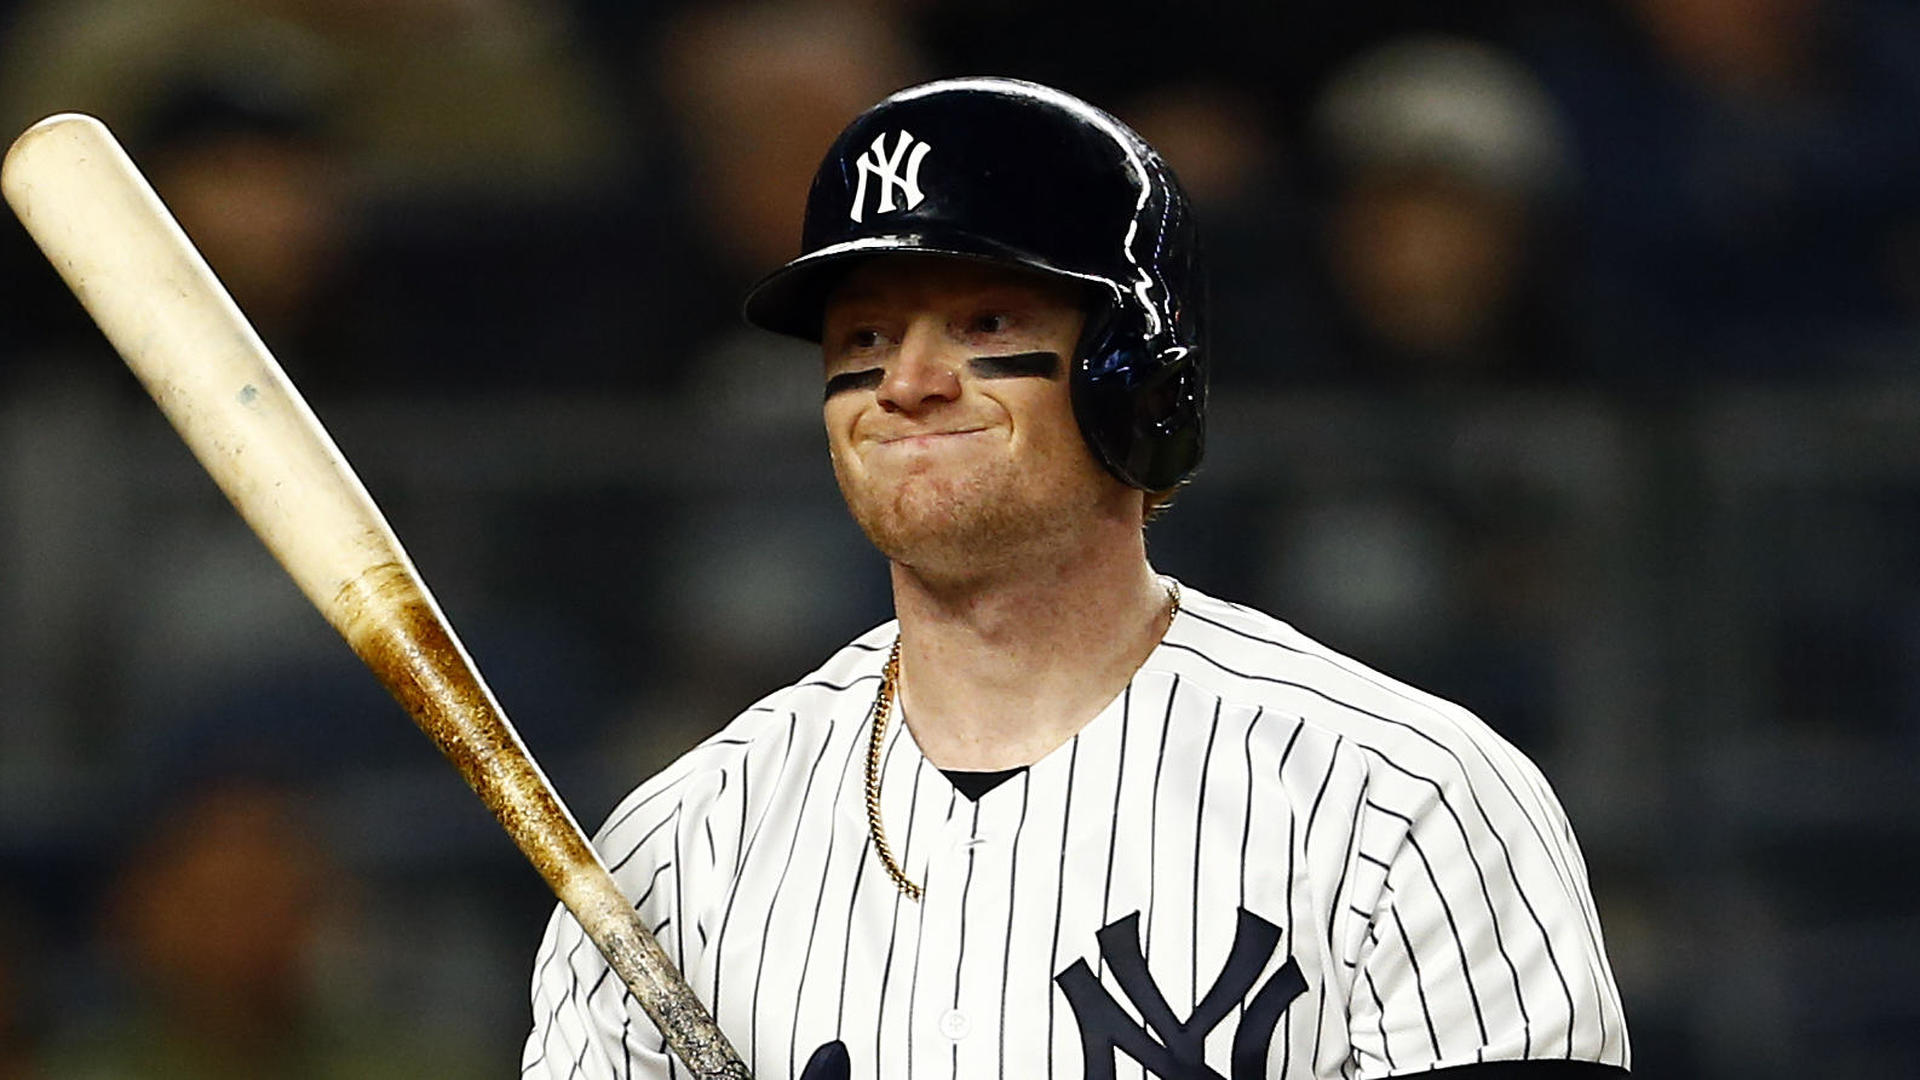 Yankees outfielder Clint Frazier surprised by demotion to minors: 'It's a tough pill to swallow'